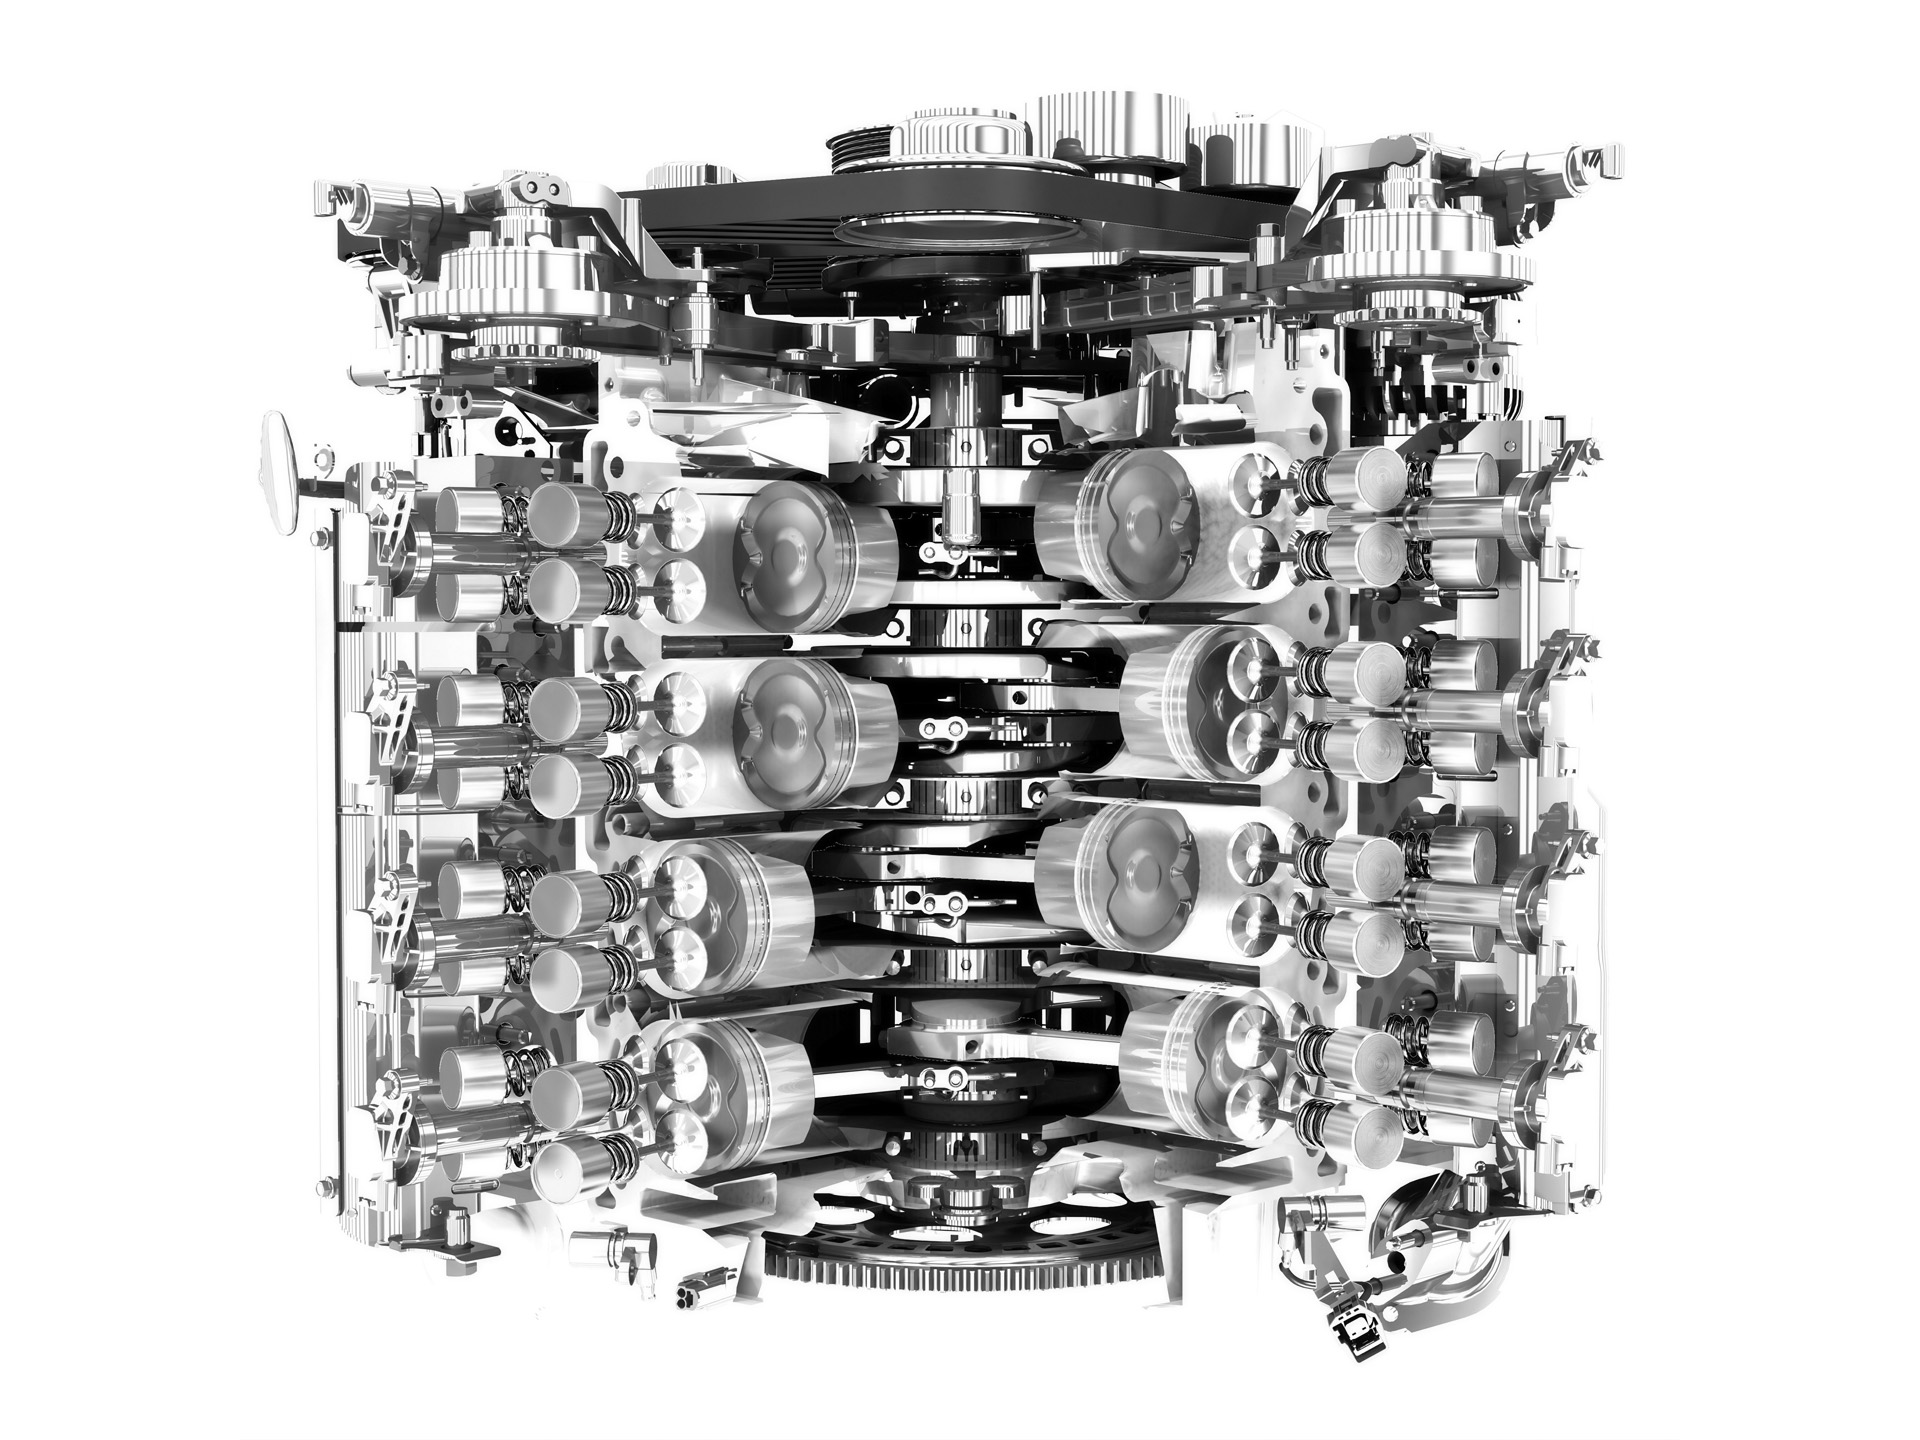 Sample P0305 Engine